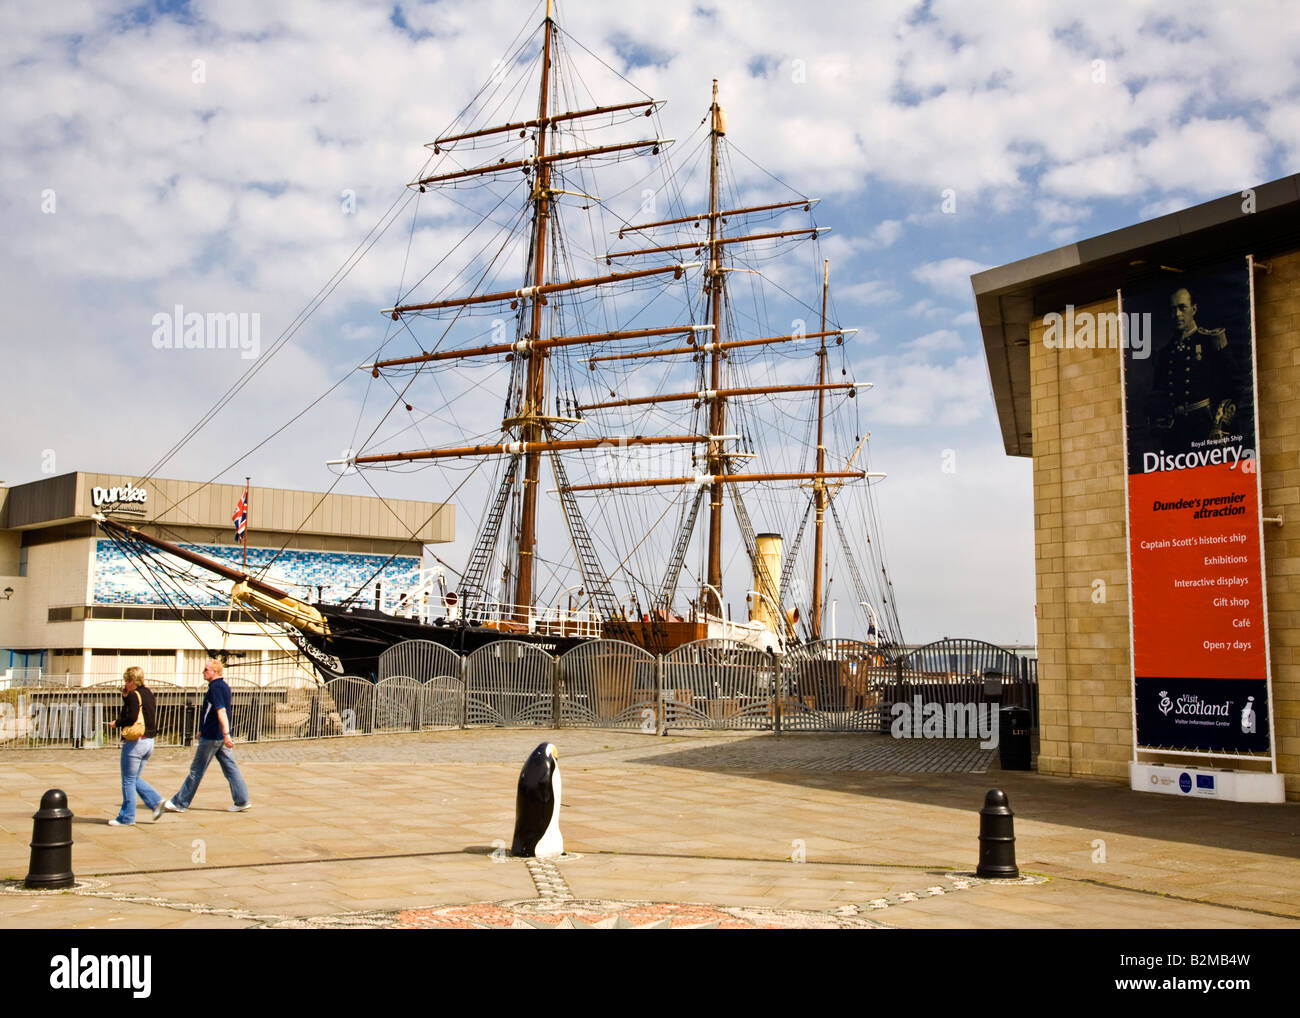 The RRS Discovery at Discovery Point, Dundee, Scotland. - Stock Image